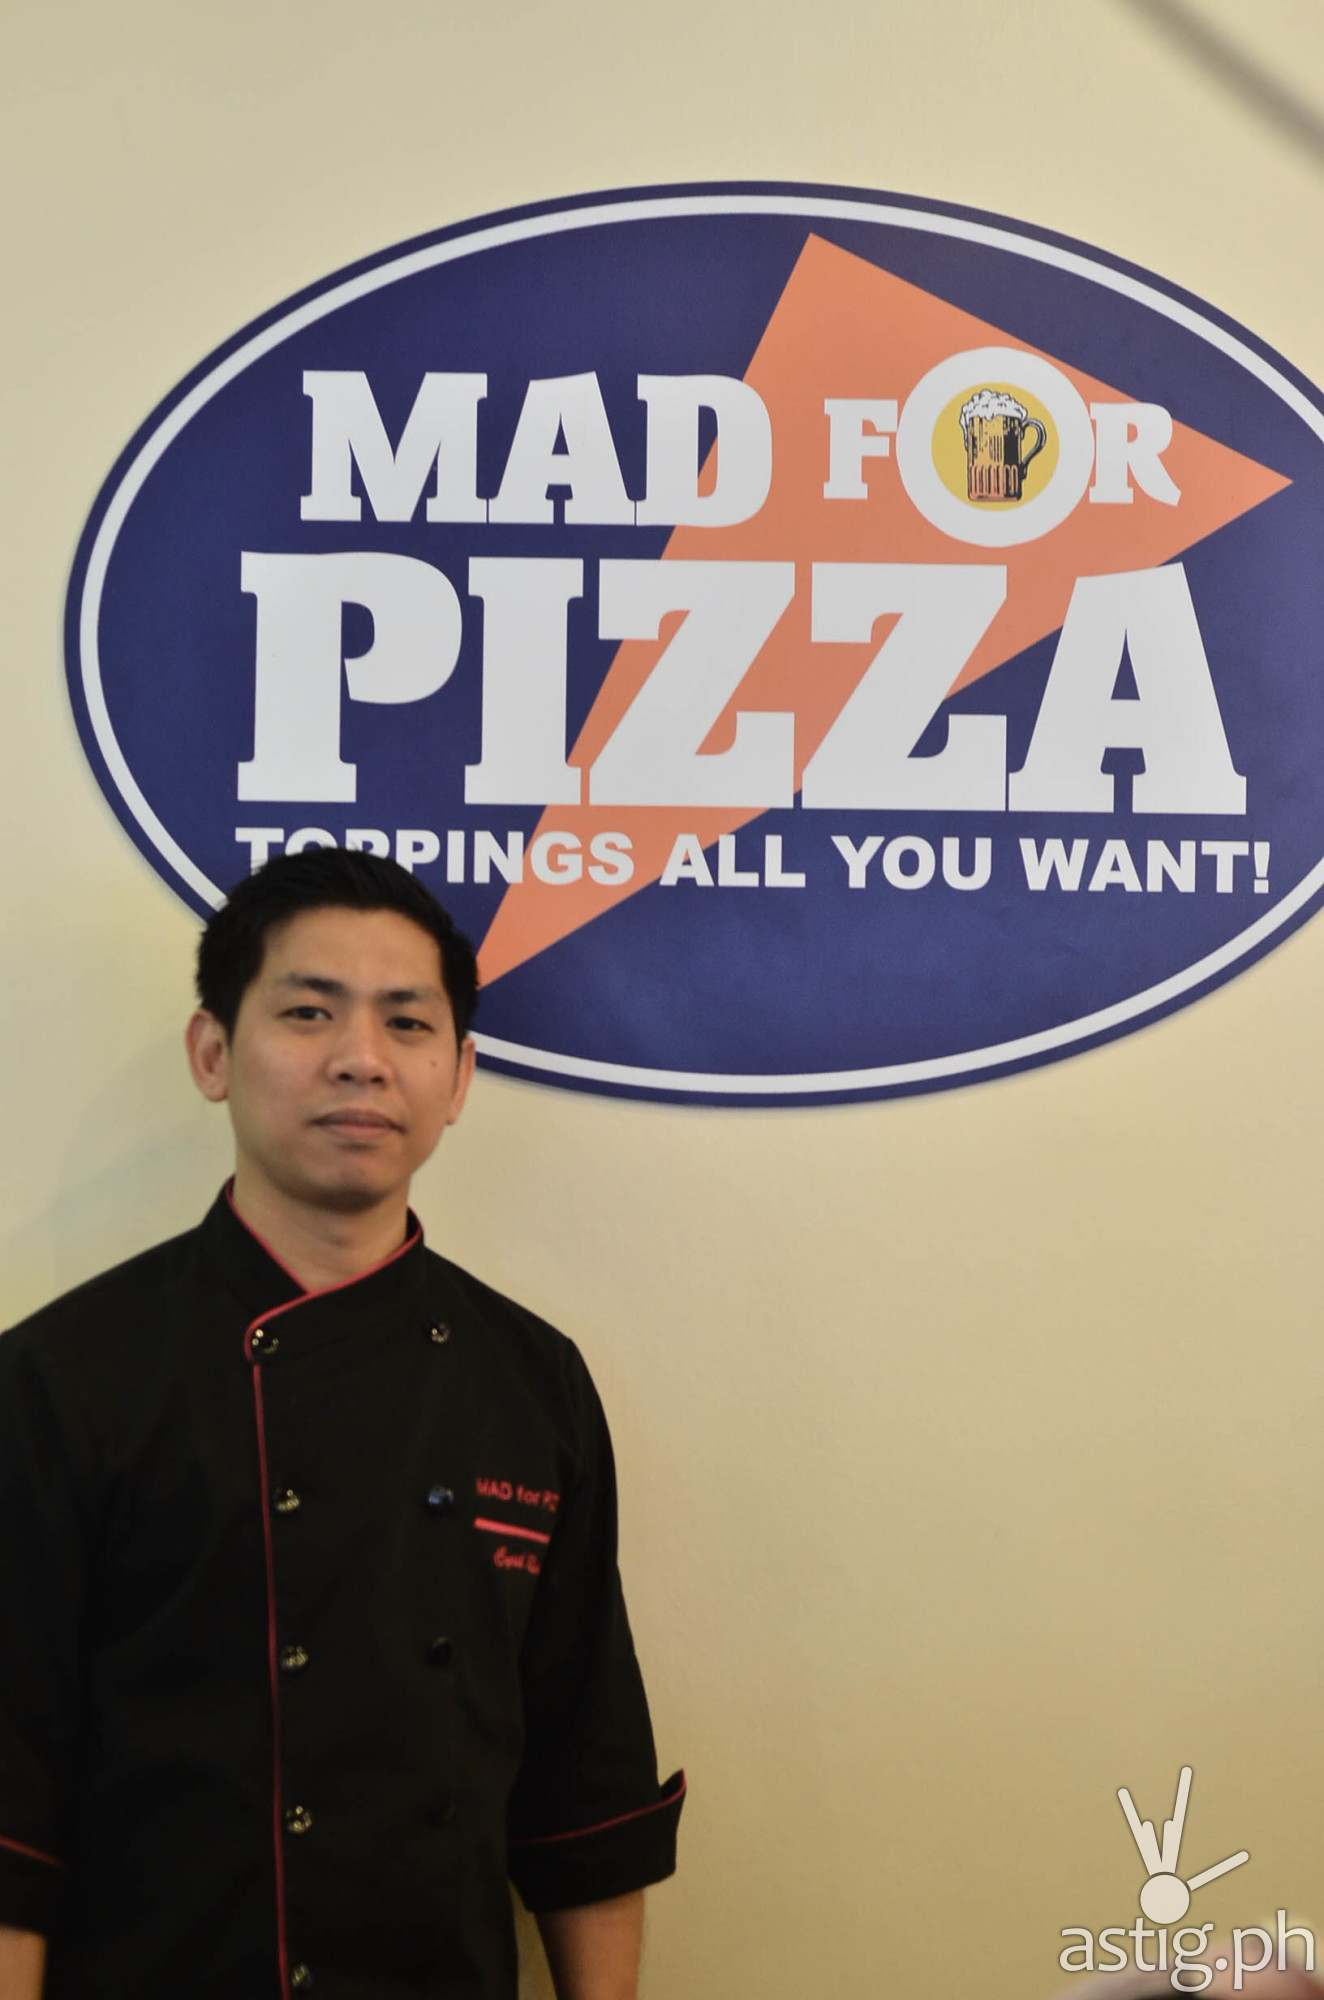 Mad for Pizza Executive Chef Cyril Reyes